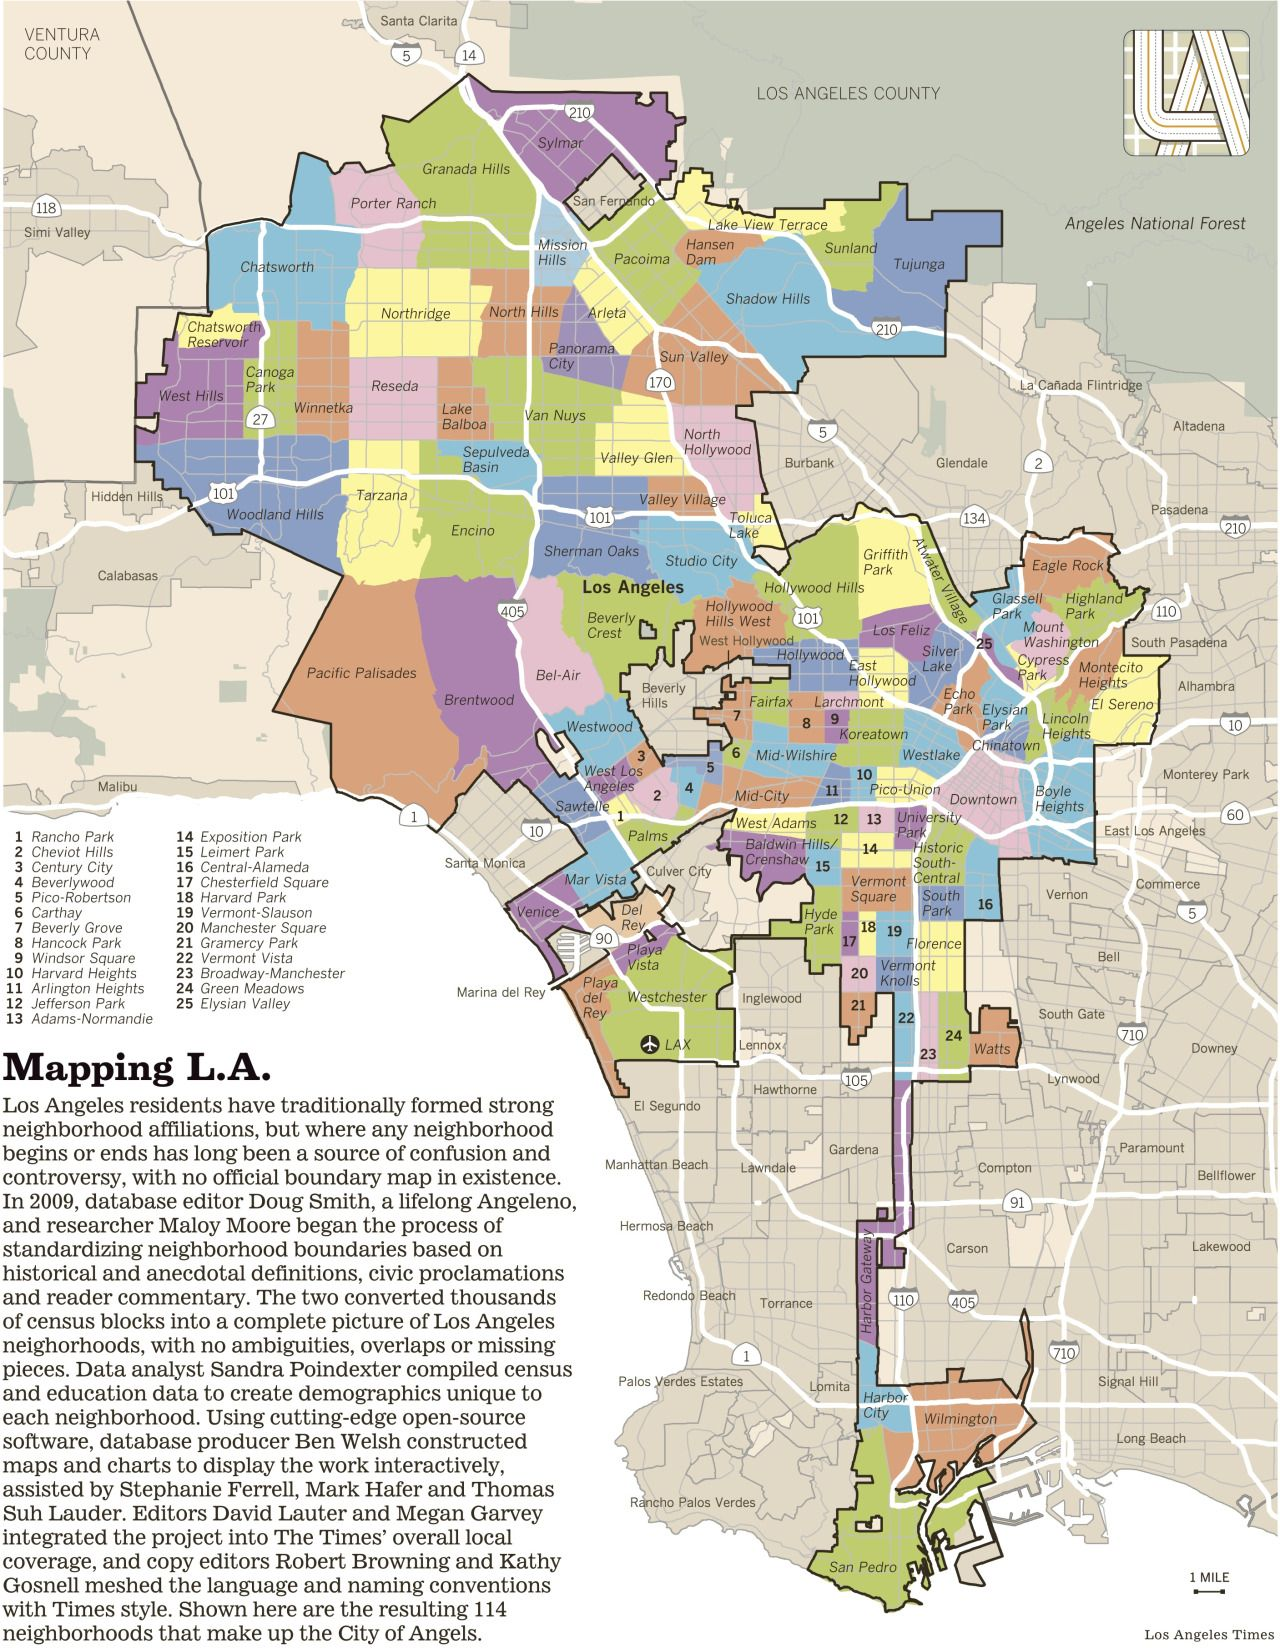 La Neighborhood Map This map shows the many neighborhoods of the sprawling (and oddly